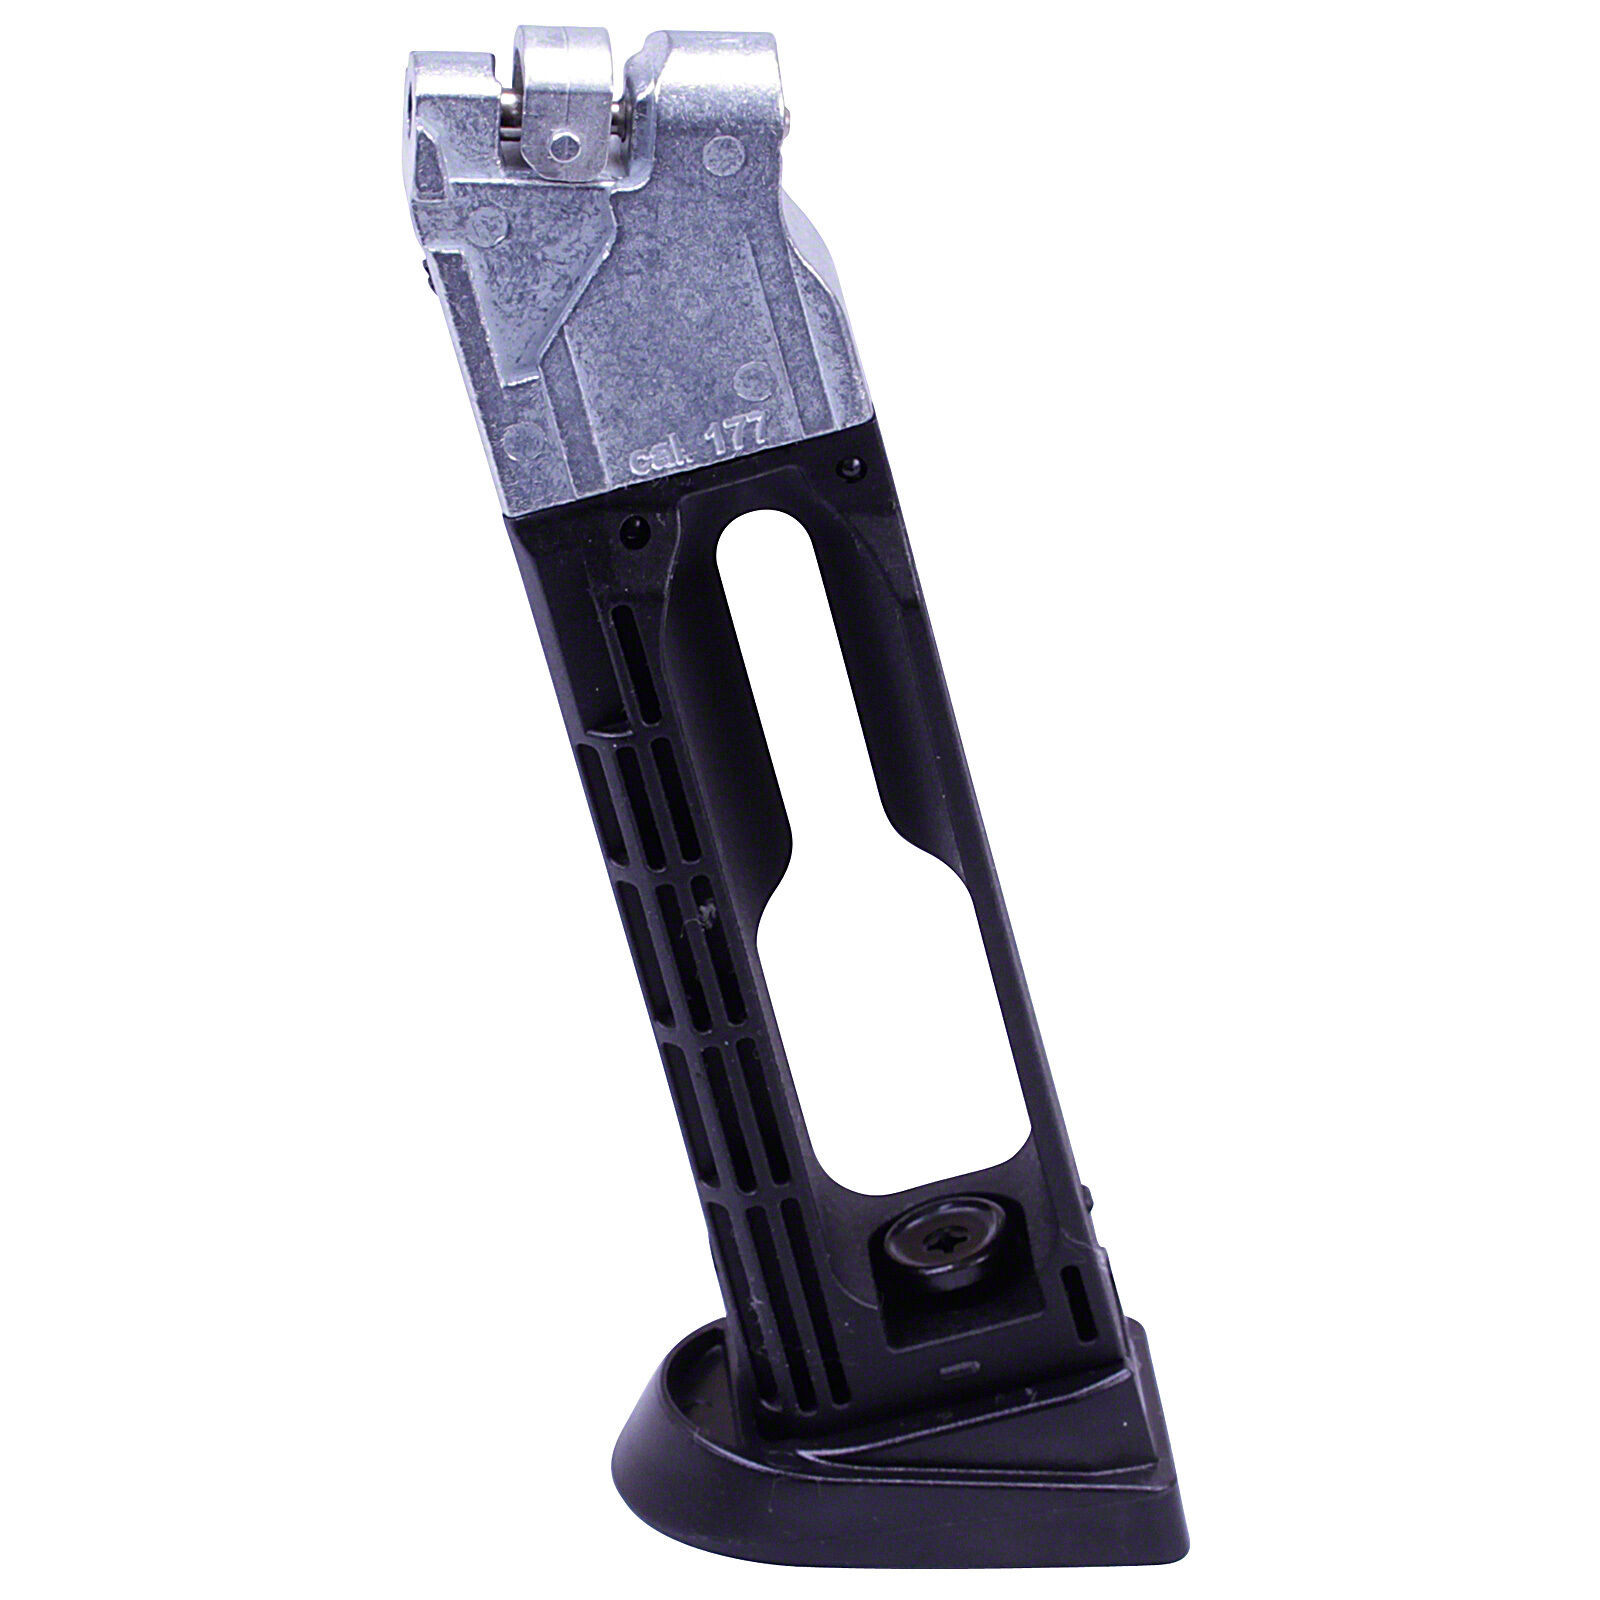 Umarex IWI Jericho B Spare 23 Shot Steel BB Magazine & Co2 Holder 5.8174.1